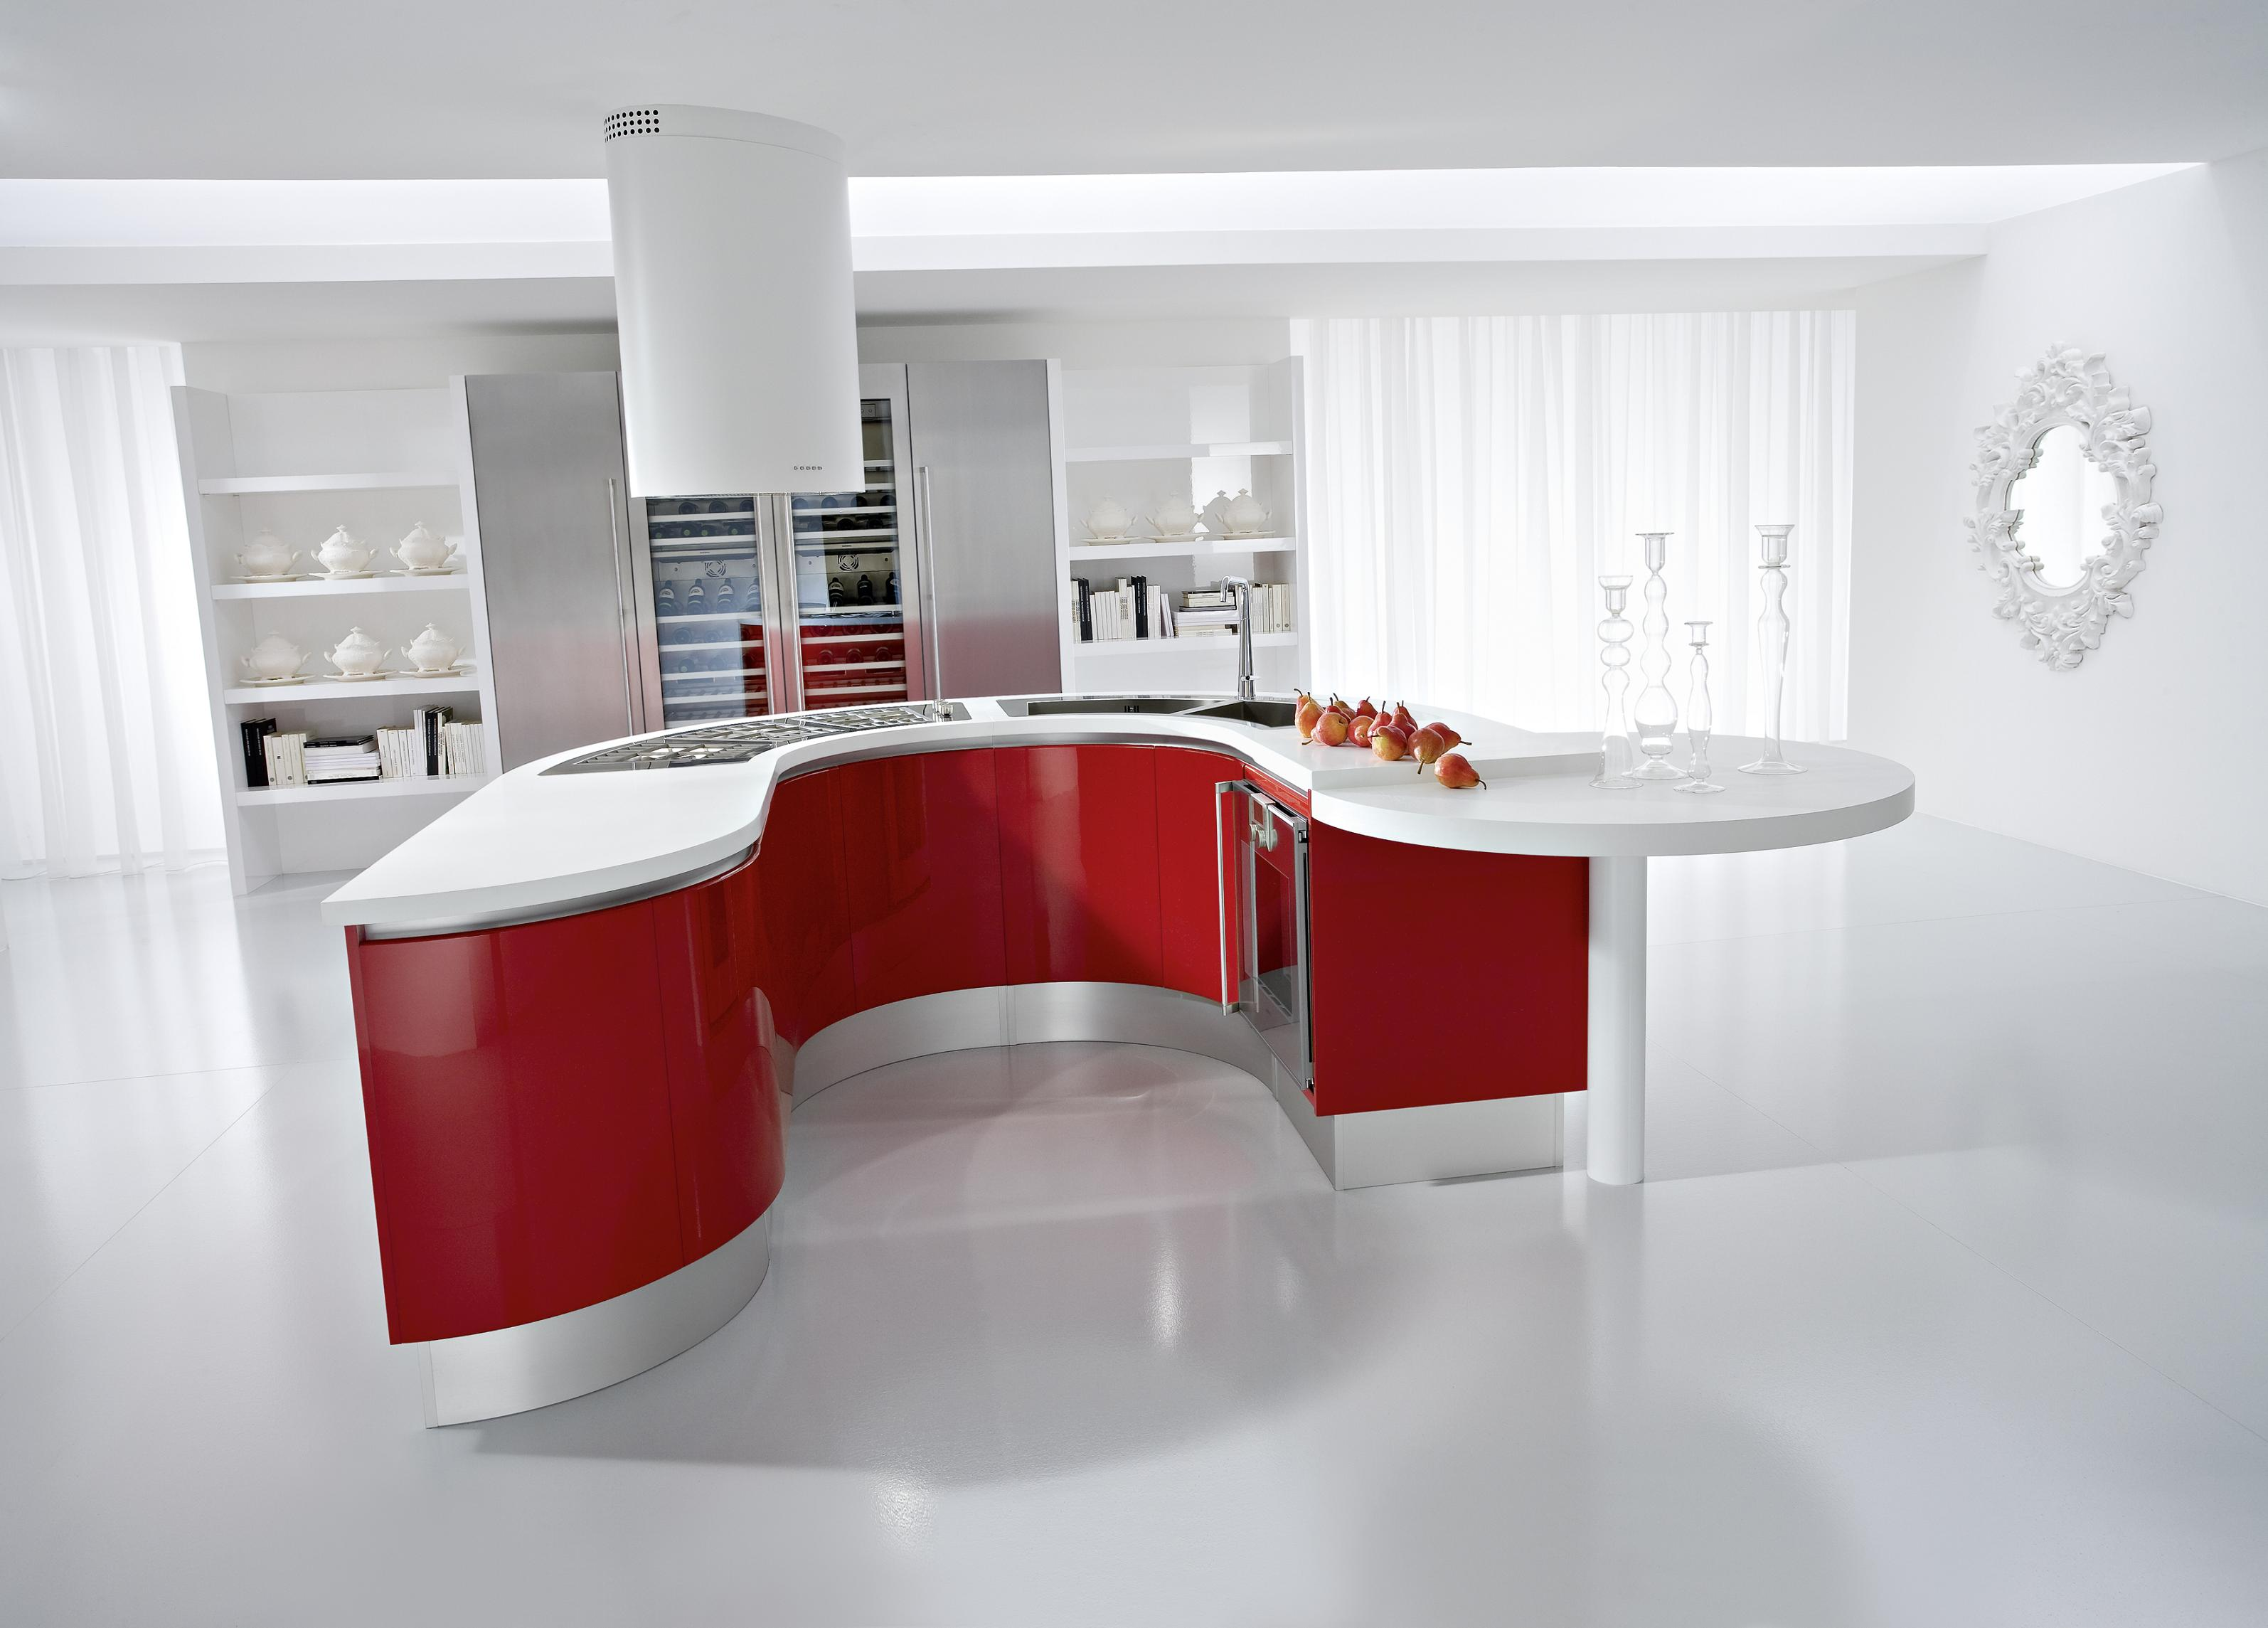 pedini is turning greener european kitchen design com